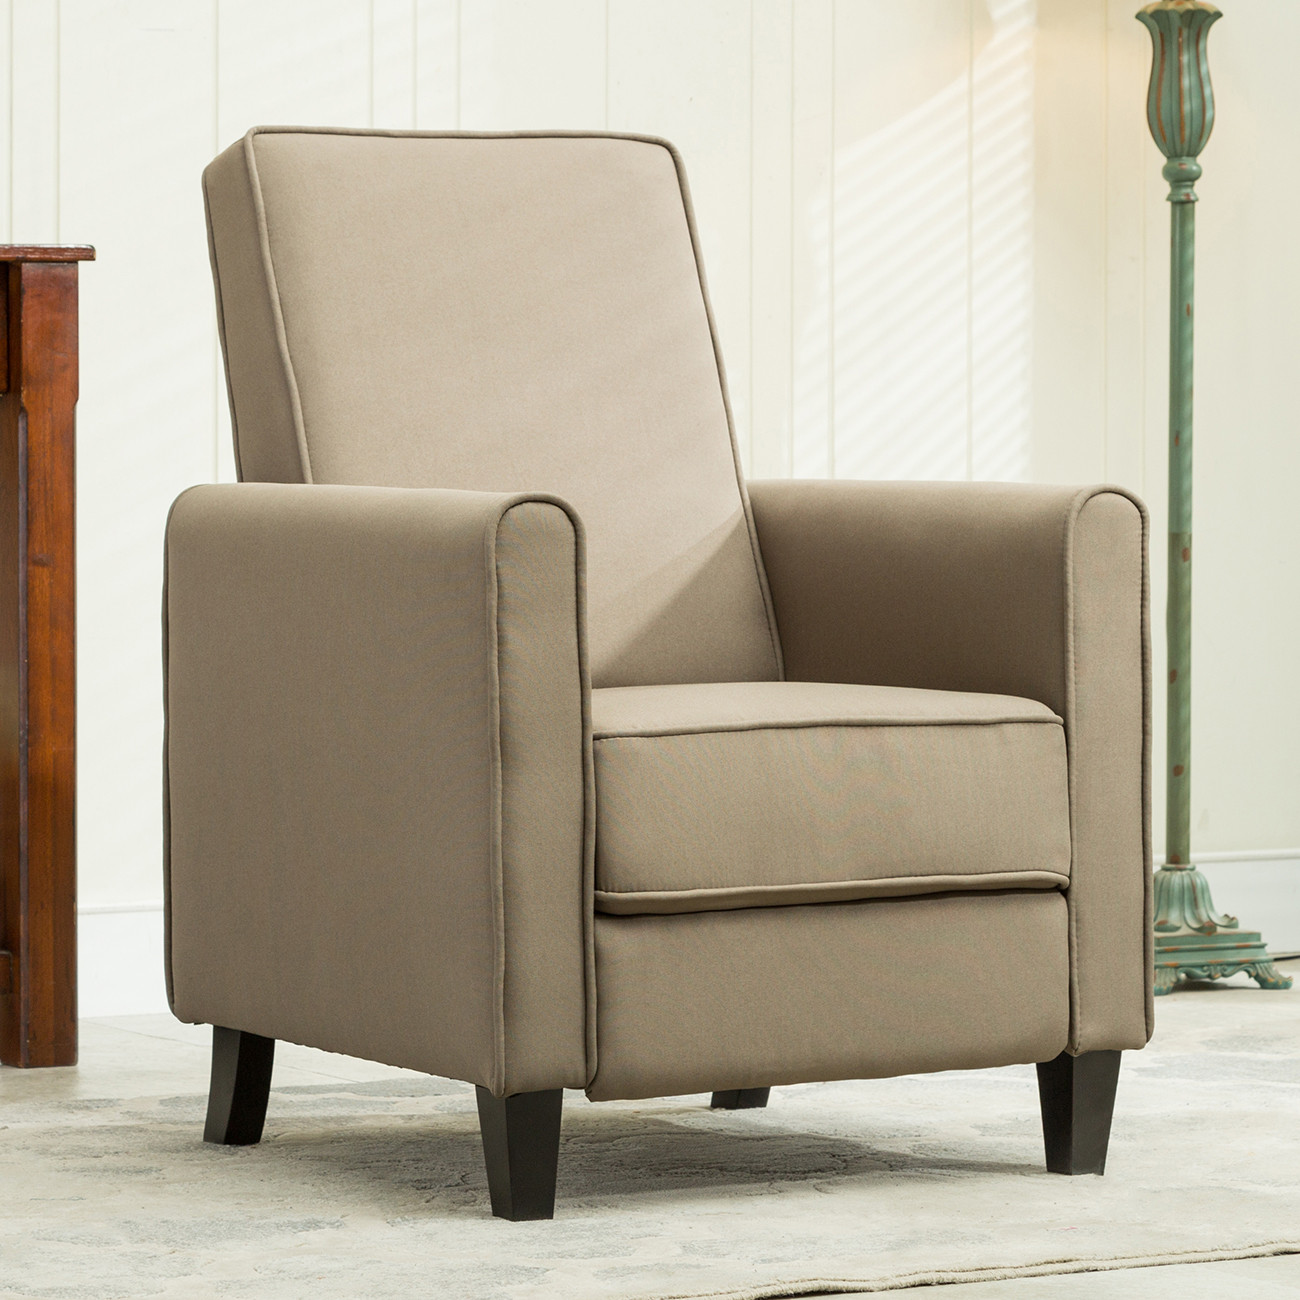 Best ideas about Modern Recliner Chair . Save or Pin Recliner Club Chair Living Room Home Modern Design Recline Now.